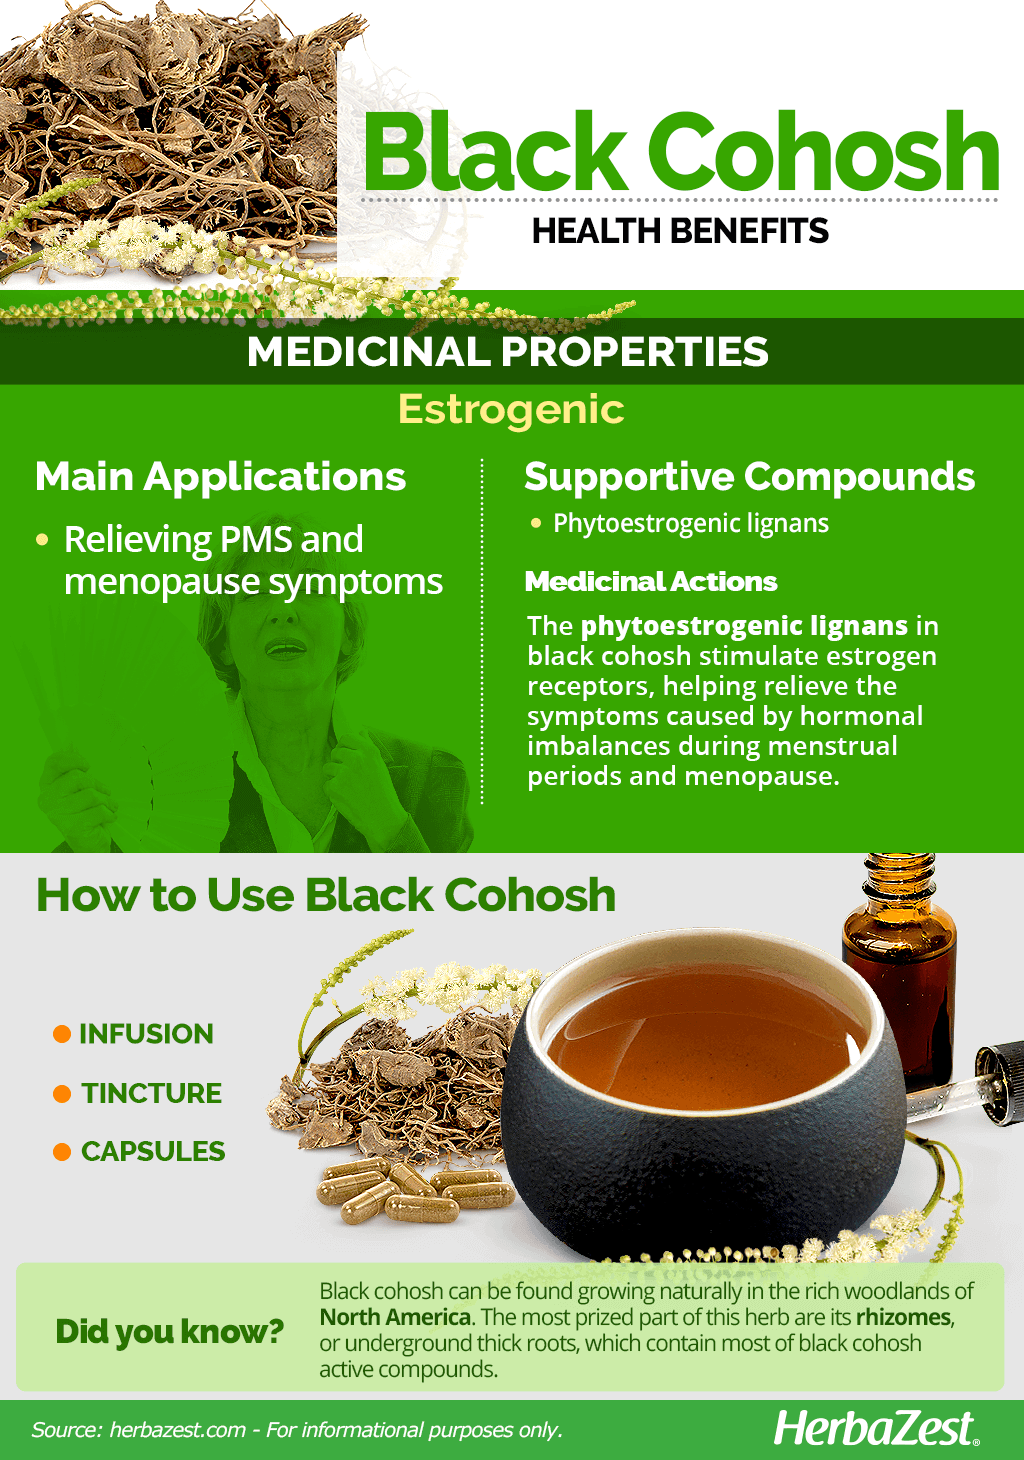 All About Black Cohosh